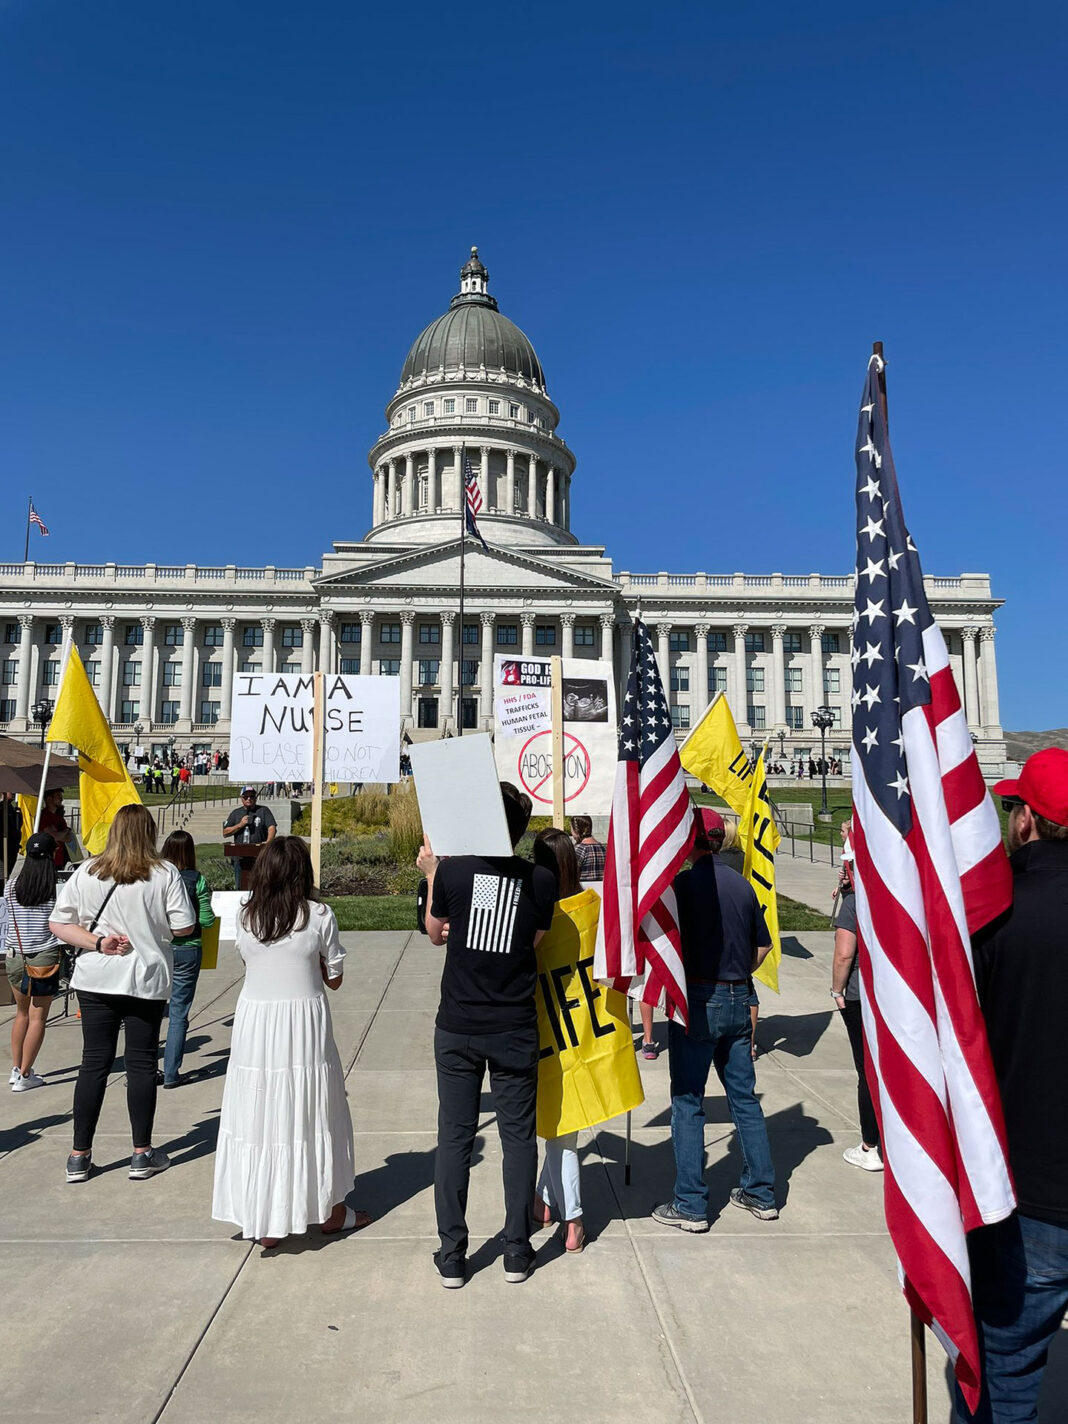 Several people carrying signs and flags